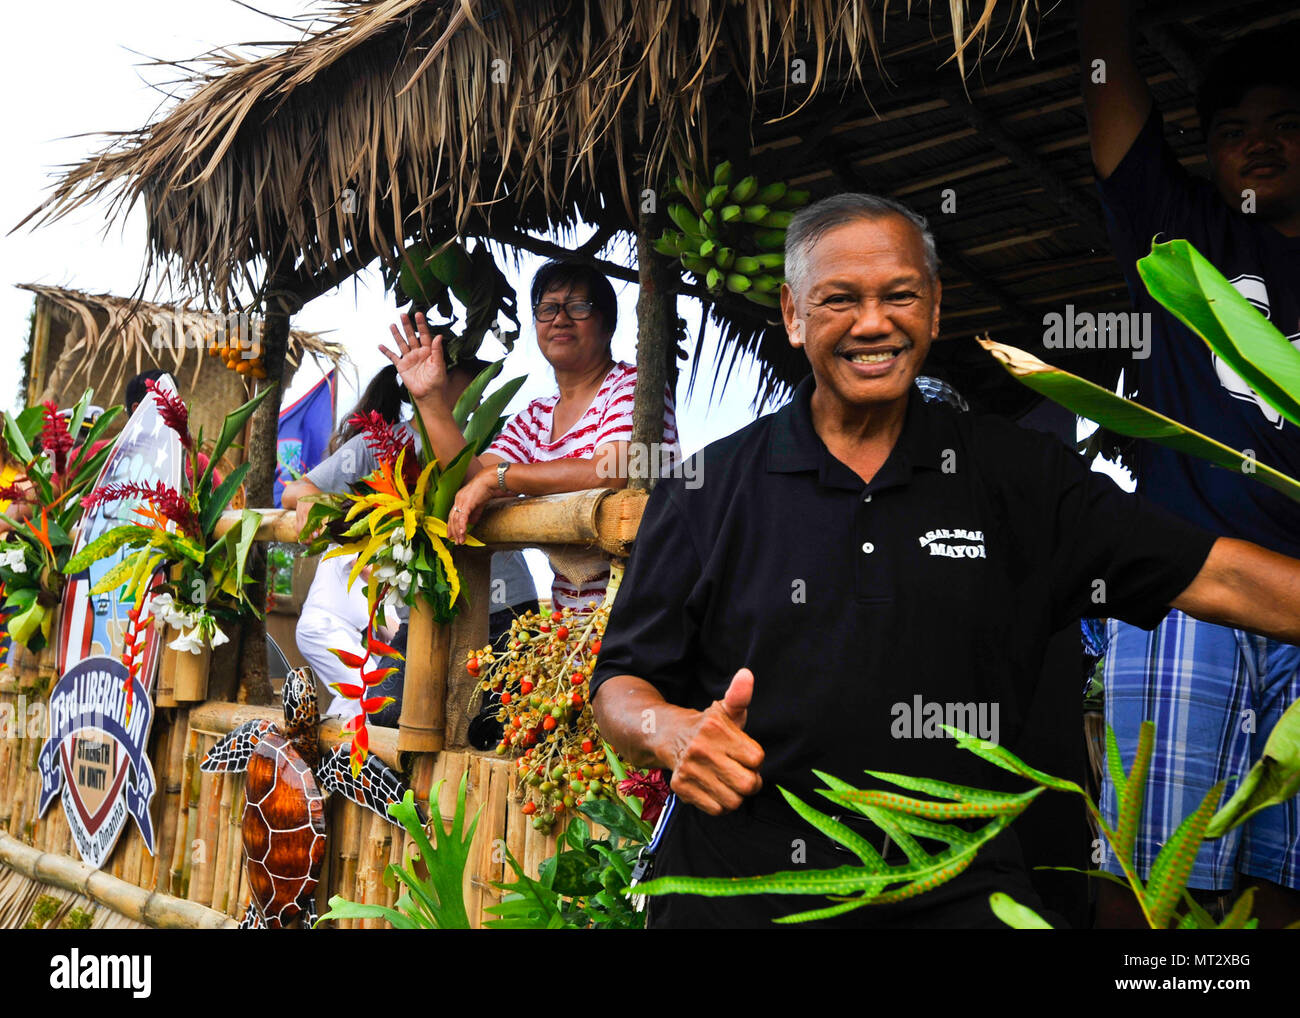 170721-N-YJ133-268  HAGATNA, Guam (July 21, 2017) Frankie Salas, mayor of Asan-Maina, Guam, gives a thumbs-up from his village's parade float during Guam's annual Liberation Day Parade in Hagatna, Guam, July 21. The 2017 Guam Liberation Parade celebrates the 73rd anniversary of the liberation of Guam from Japanese occupation by U.S. forces during World War II. (U.S. Navy photo by Mass Communication Specialist 2nd Class Richard Miller/Released) - Stock Image